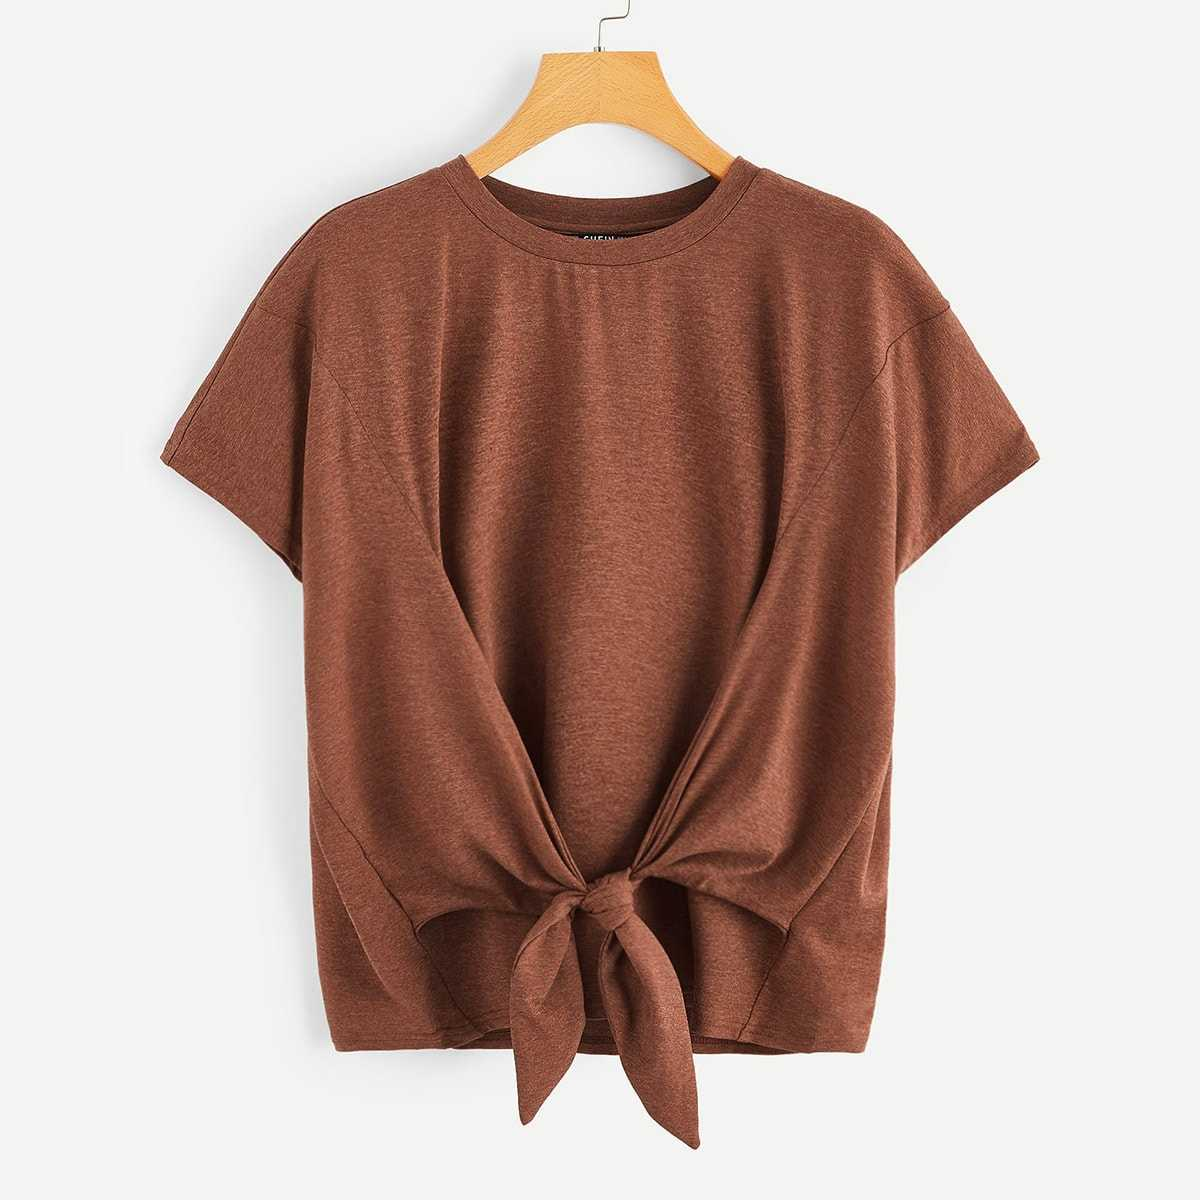 Knot Front Heather Knit Top in Brown by ROMWE on GOOFASH